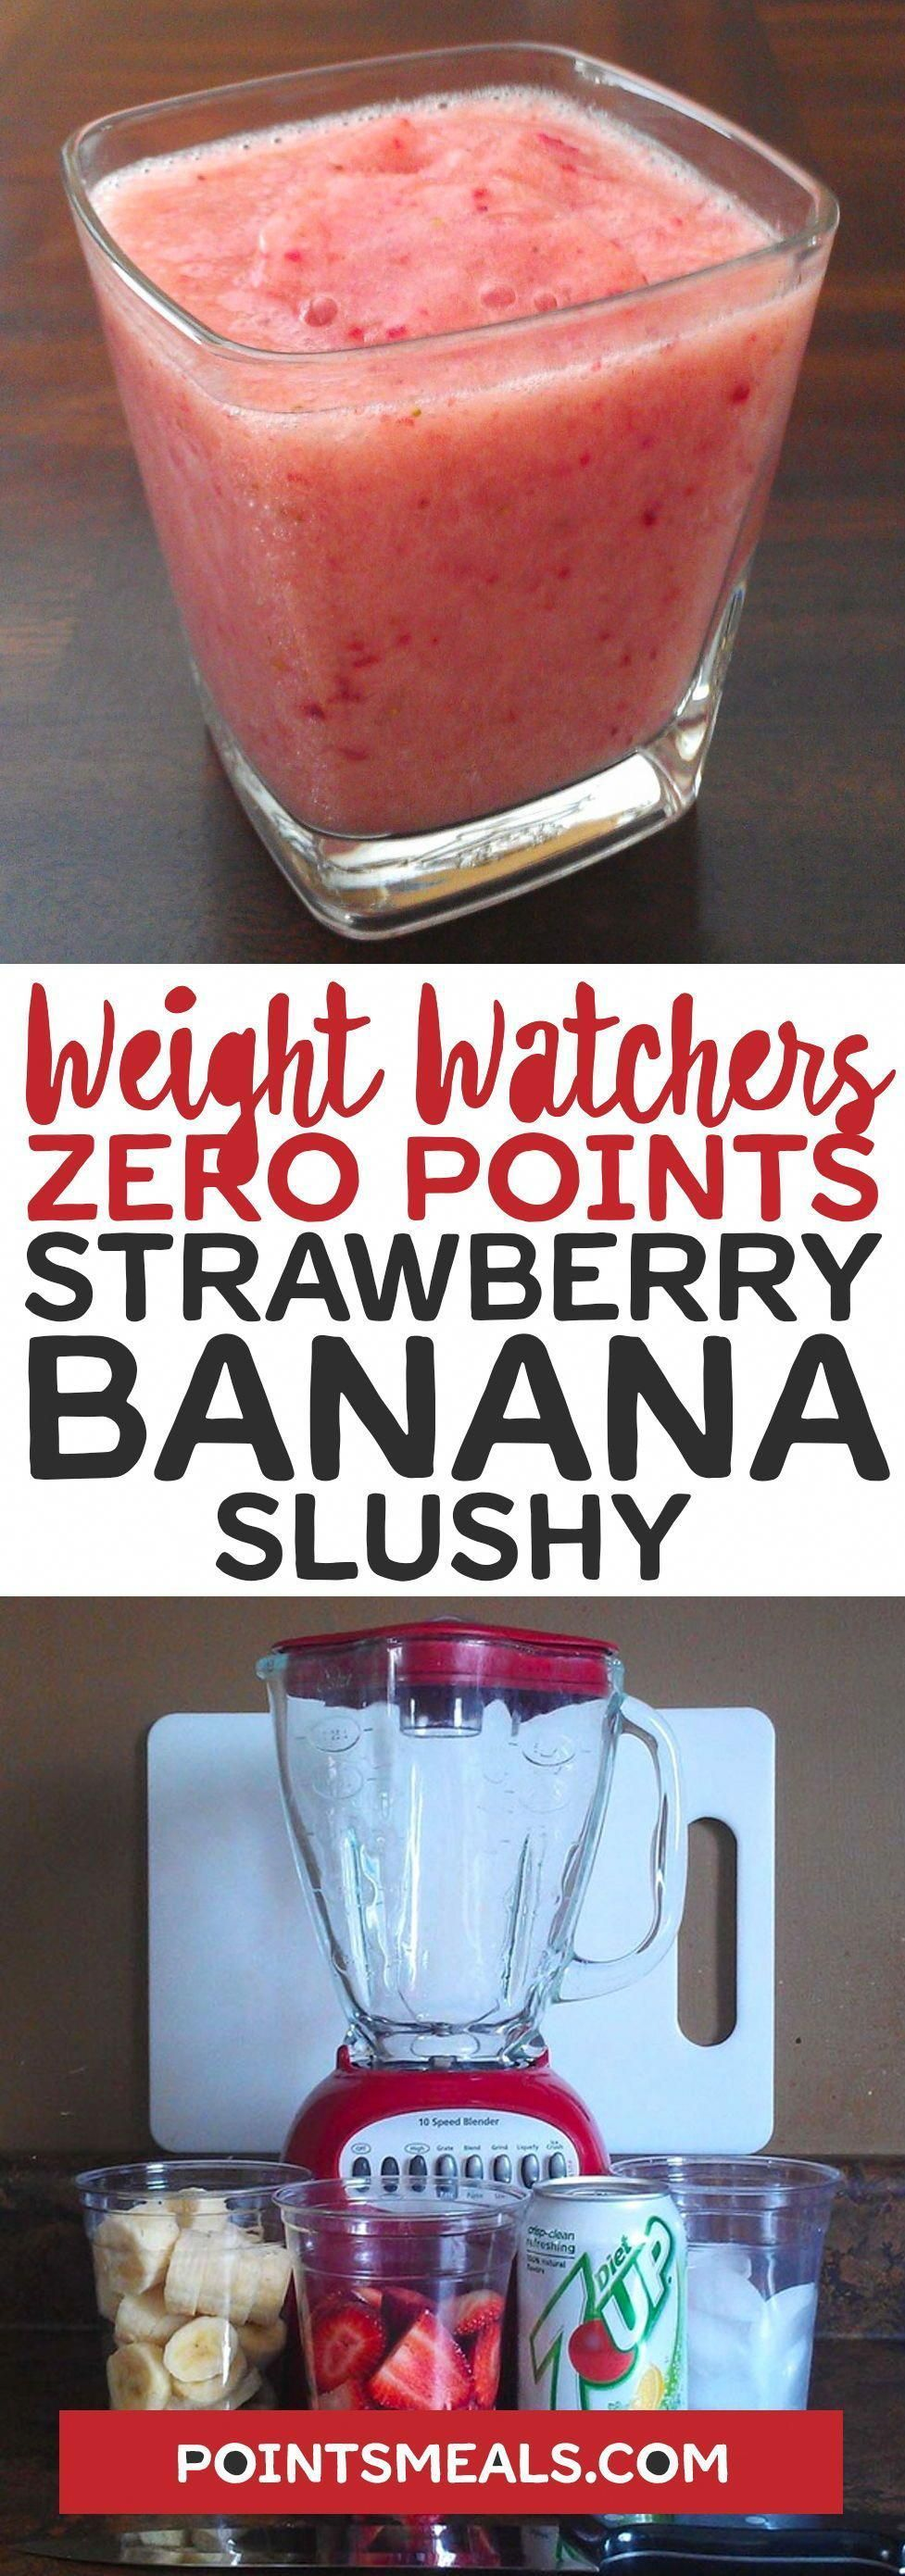 Healthy Strawberry Banana Smoothie Recipes For Weight Loss #BananaWeightLoss #strawberrybananasmoothie Healthy Strawberry Banana Smoothie Recipes For Weight Loss #BananaWeightLoss #healthystrawberrybananasmoothie Healthy Strawberry Banana Smoothie Recipes For Weight Loss #BananaWeightLoss #strawberrybananasmoothie Healthy Strawberry Banana Smoothie Recipes For Weight Loss #BananaWeightLoss #healthystrawberrybananasmoothie